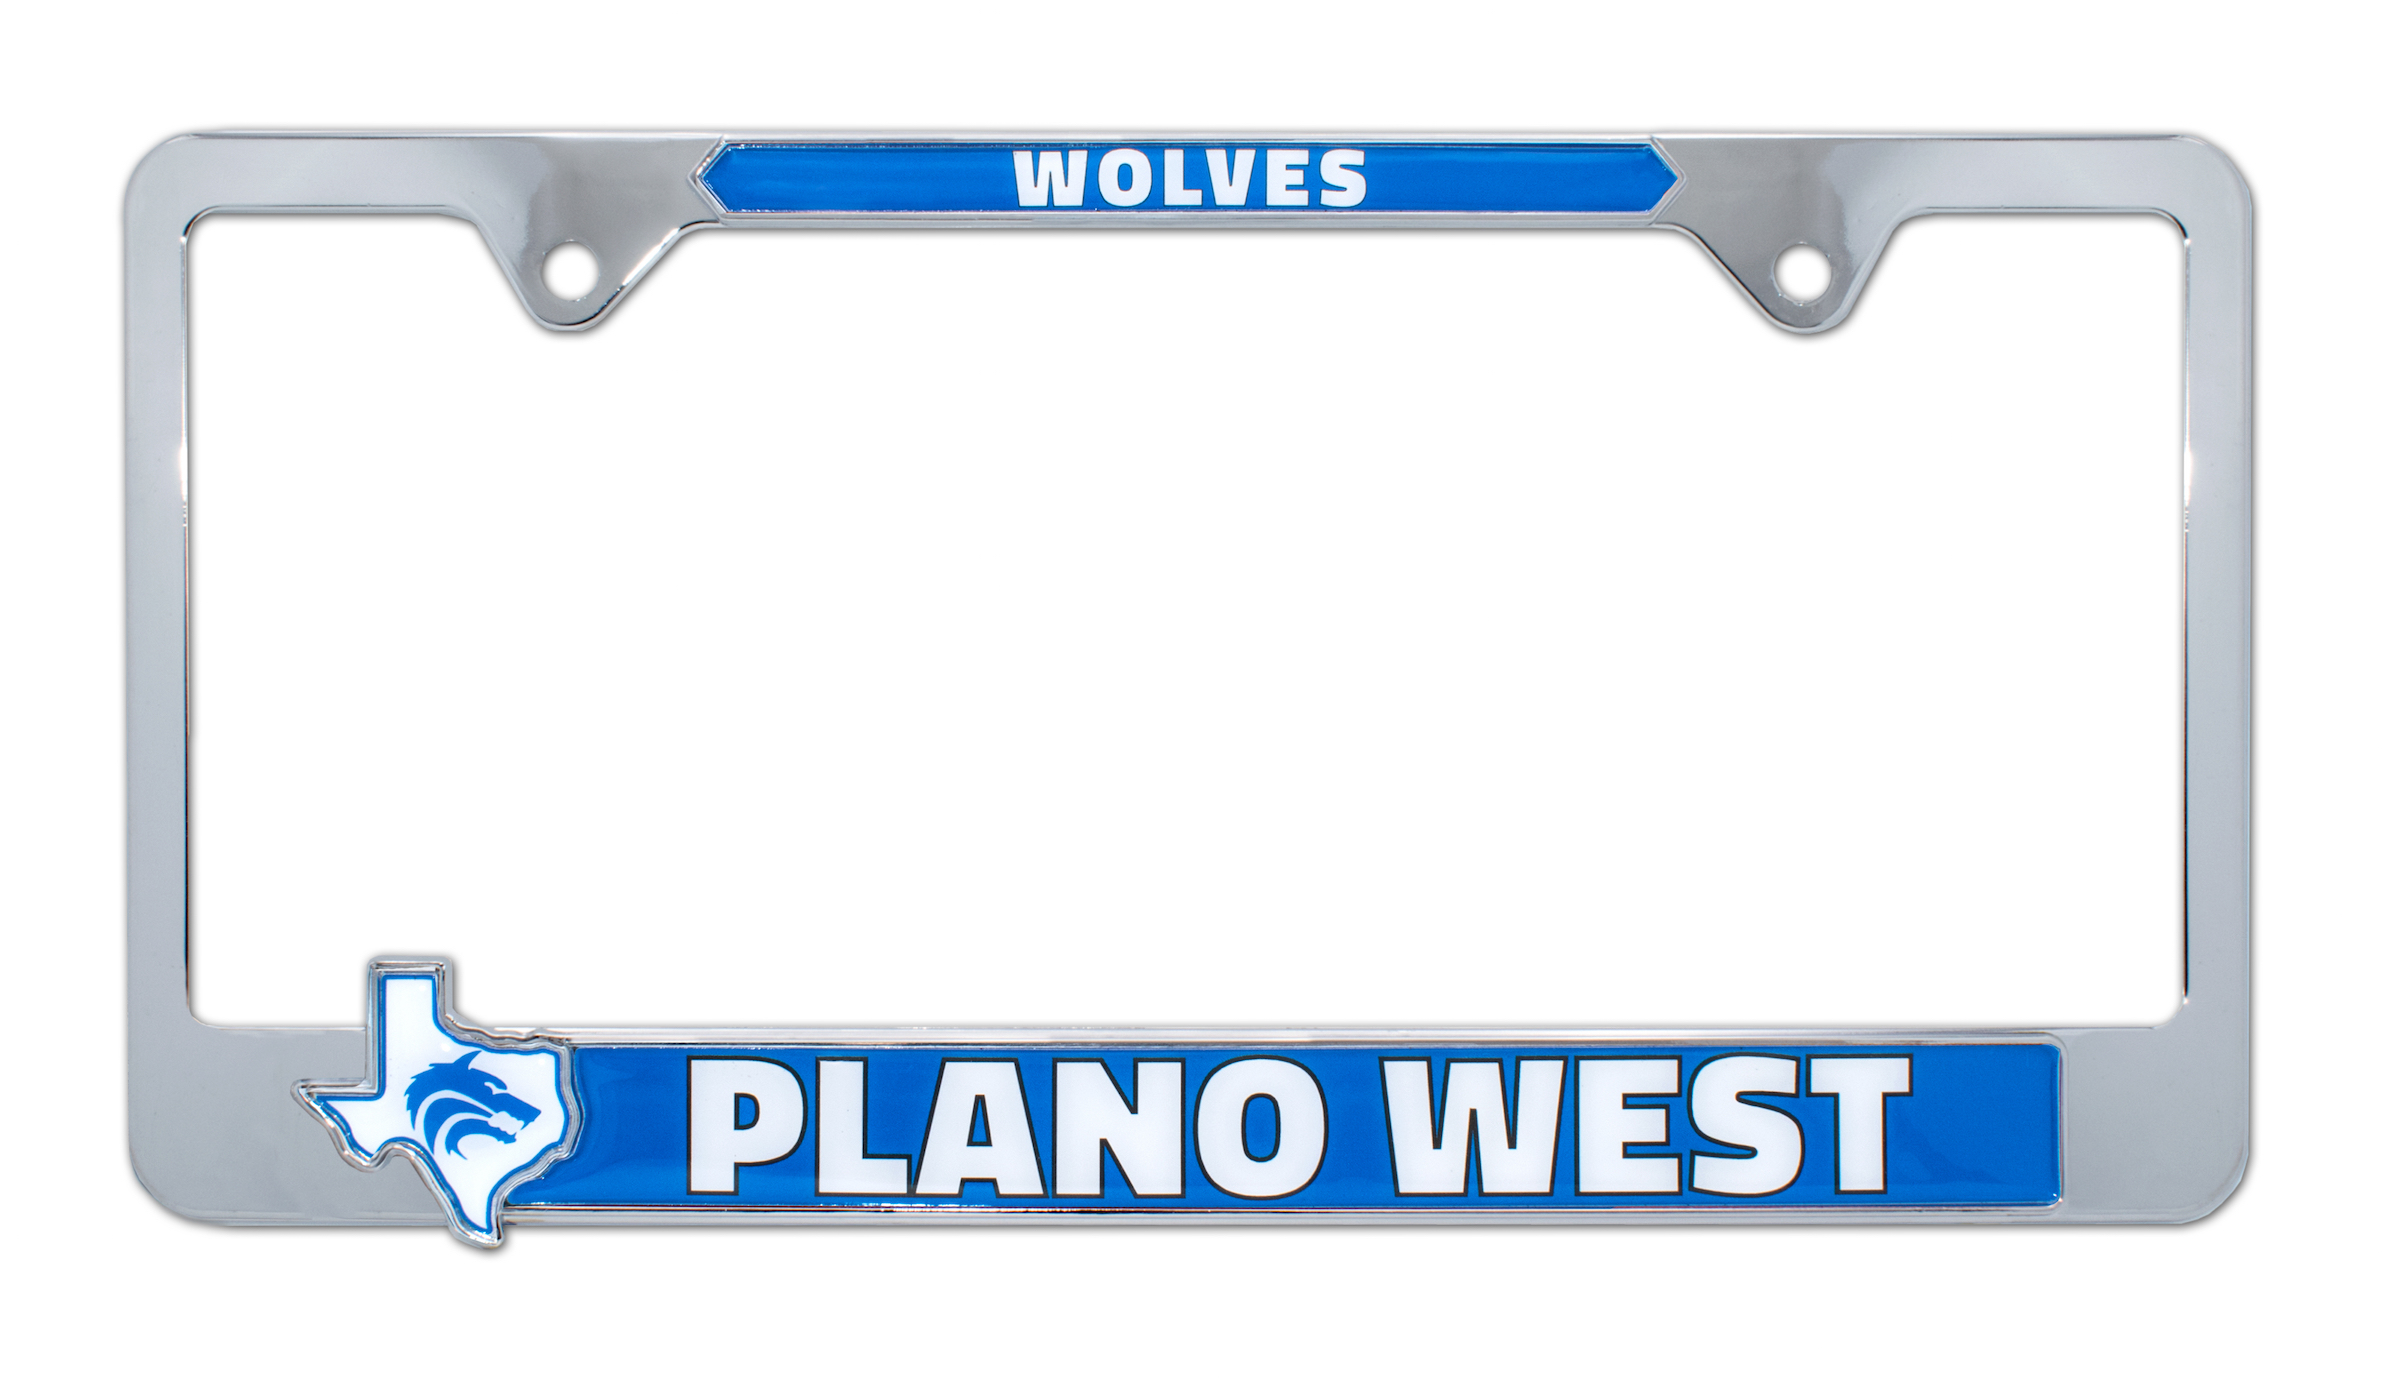 High Quality Metal License Plate Frames  (make up to $10 each one sold - Raise $3,000 for just selling 300)